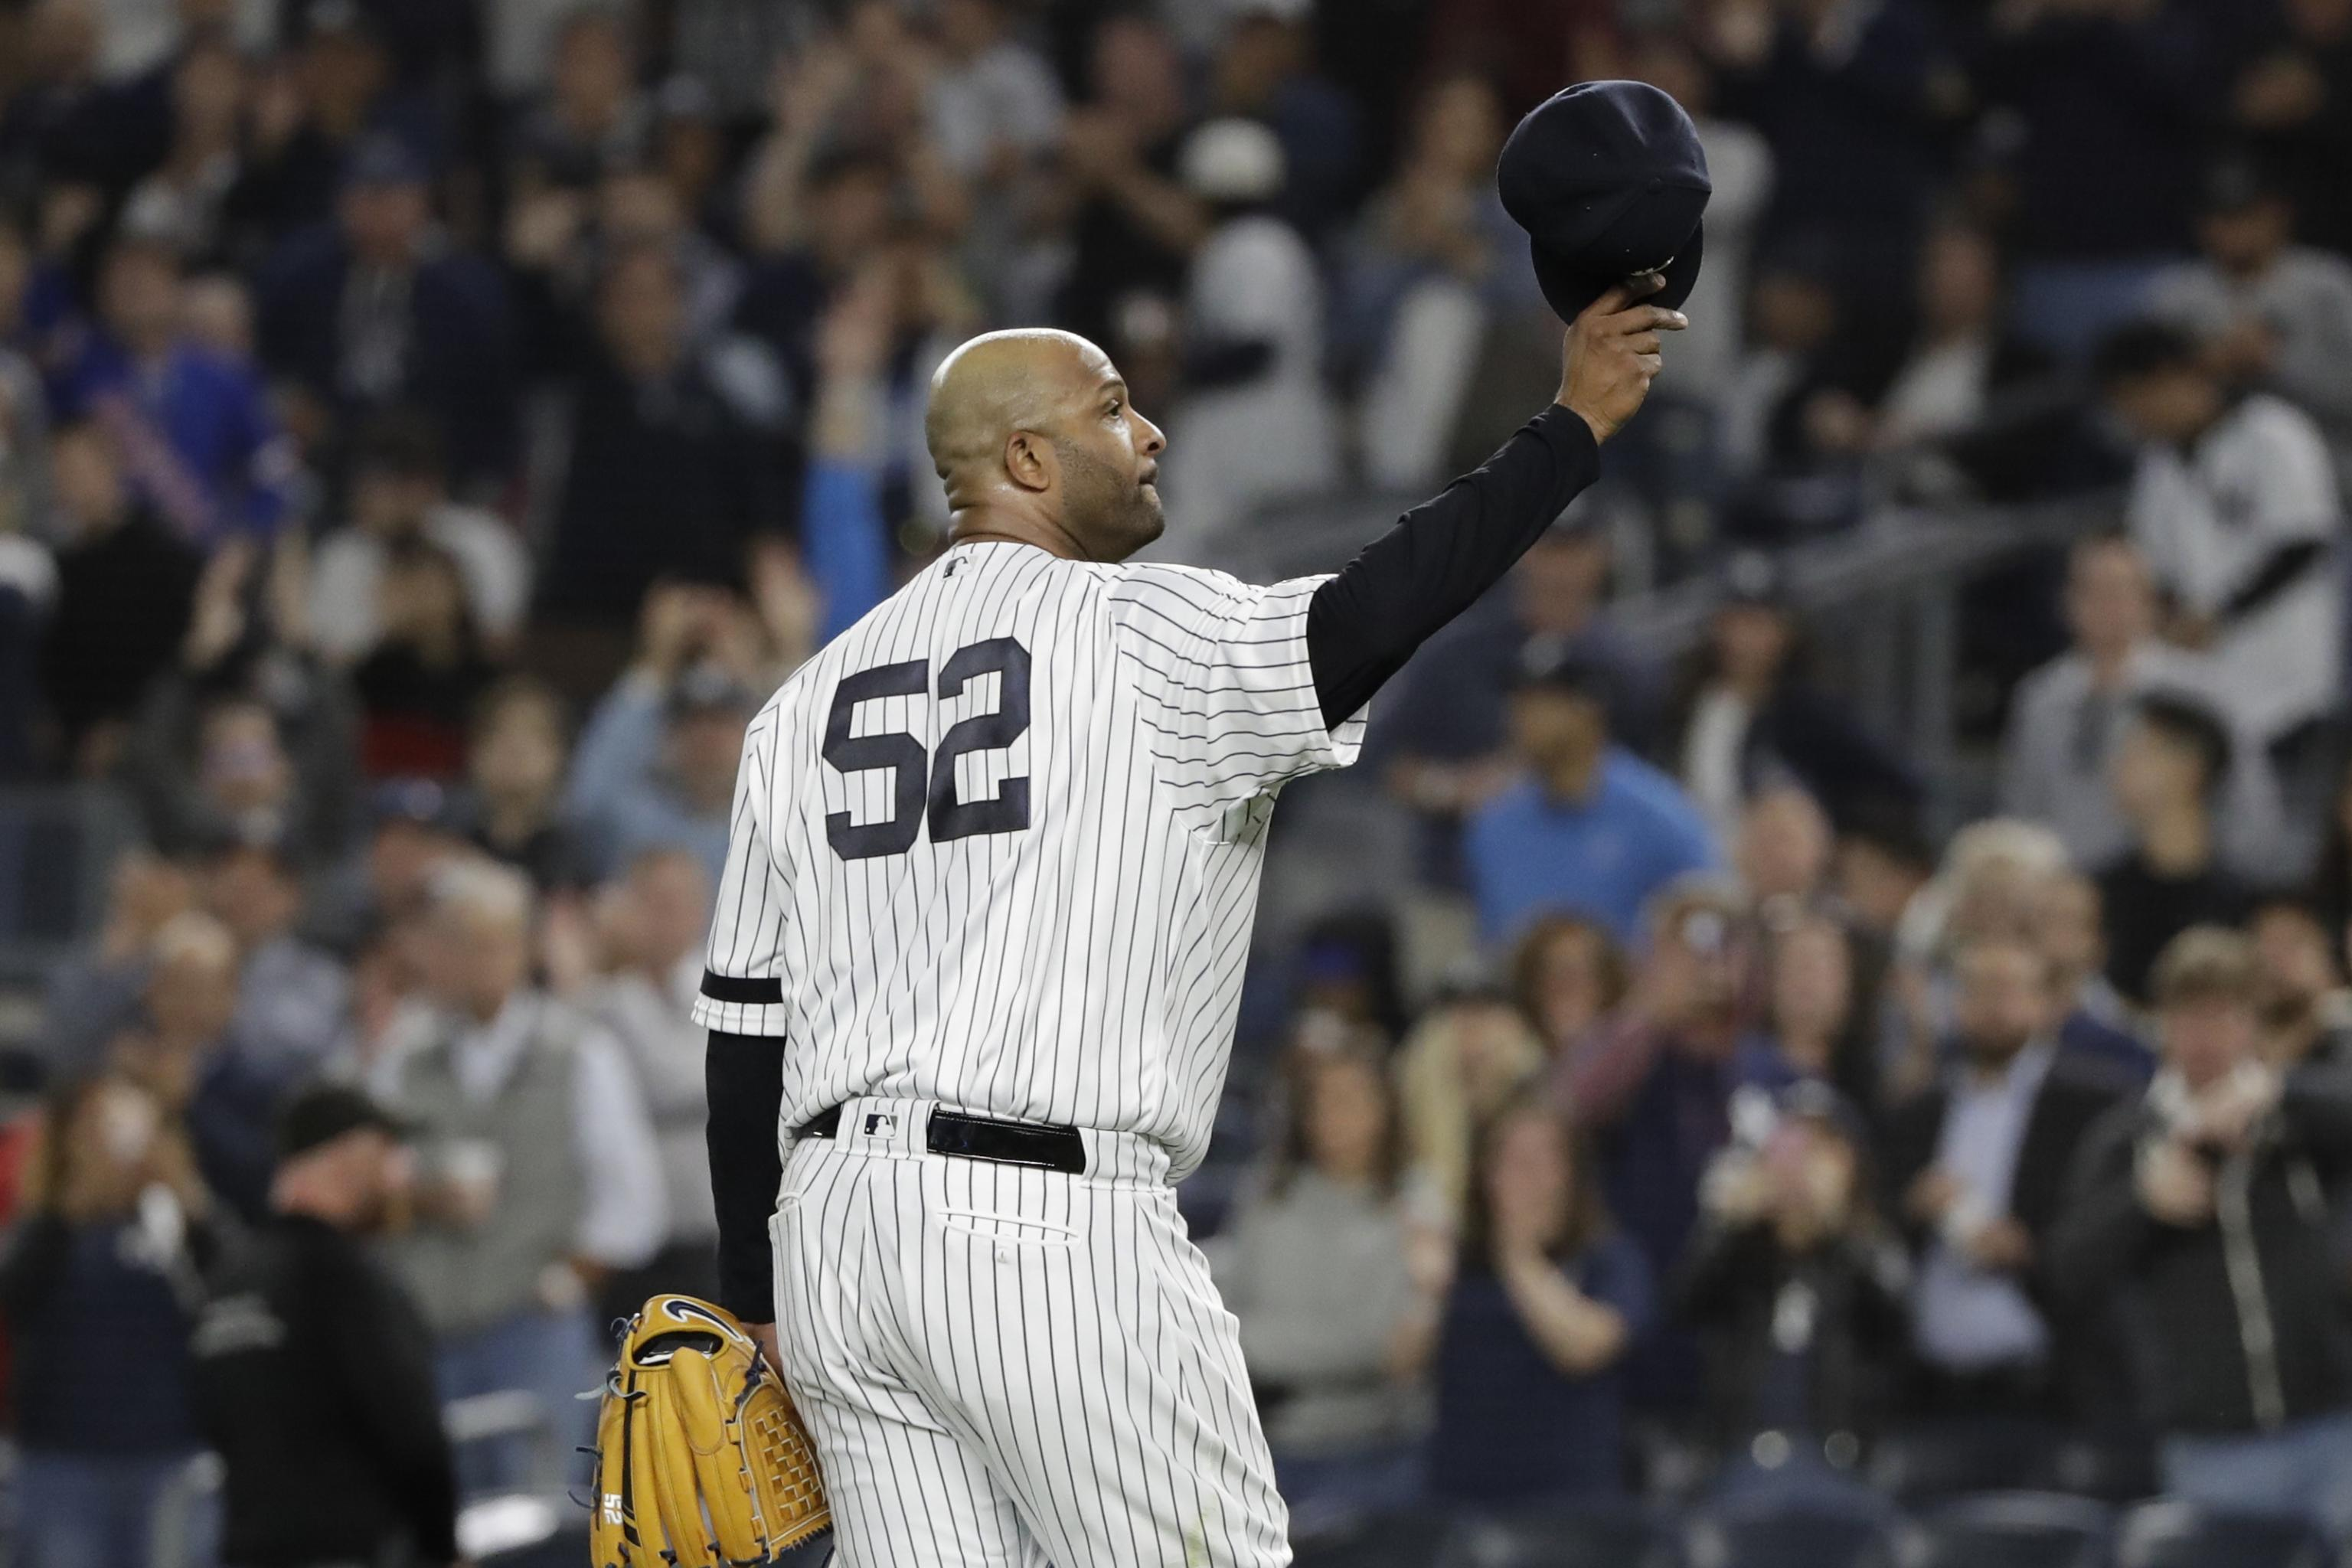 hot sale online 598a2 10816 Watch Yankees' CC Sabathia Get Standing Ovation After Likely ...